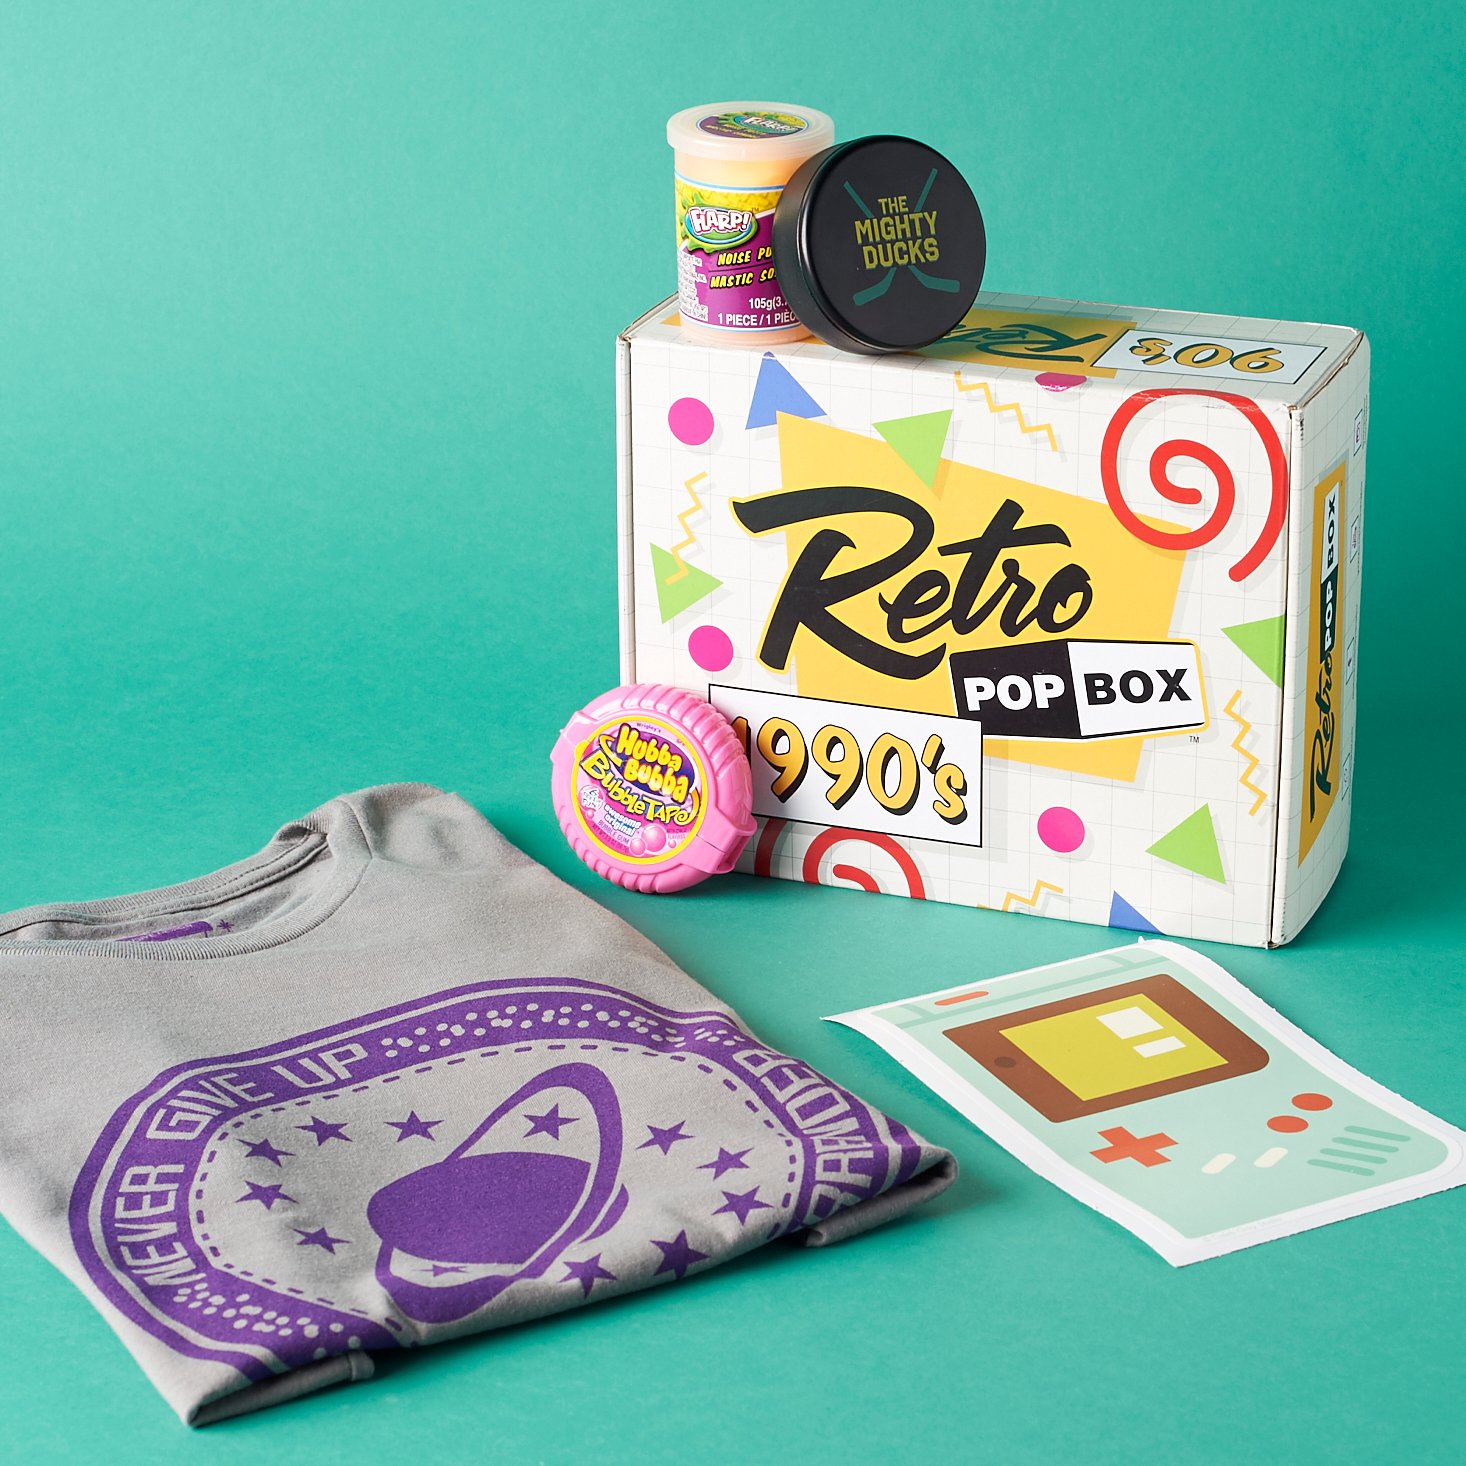 Read our review of the January 2017 Retro Pop '90s box!